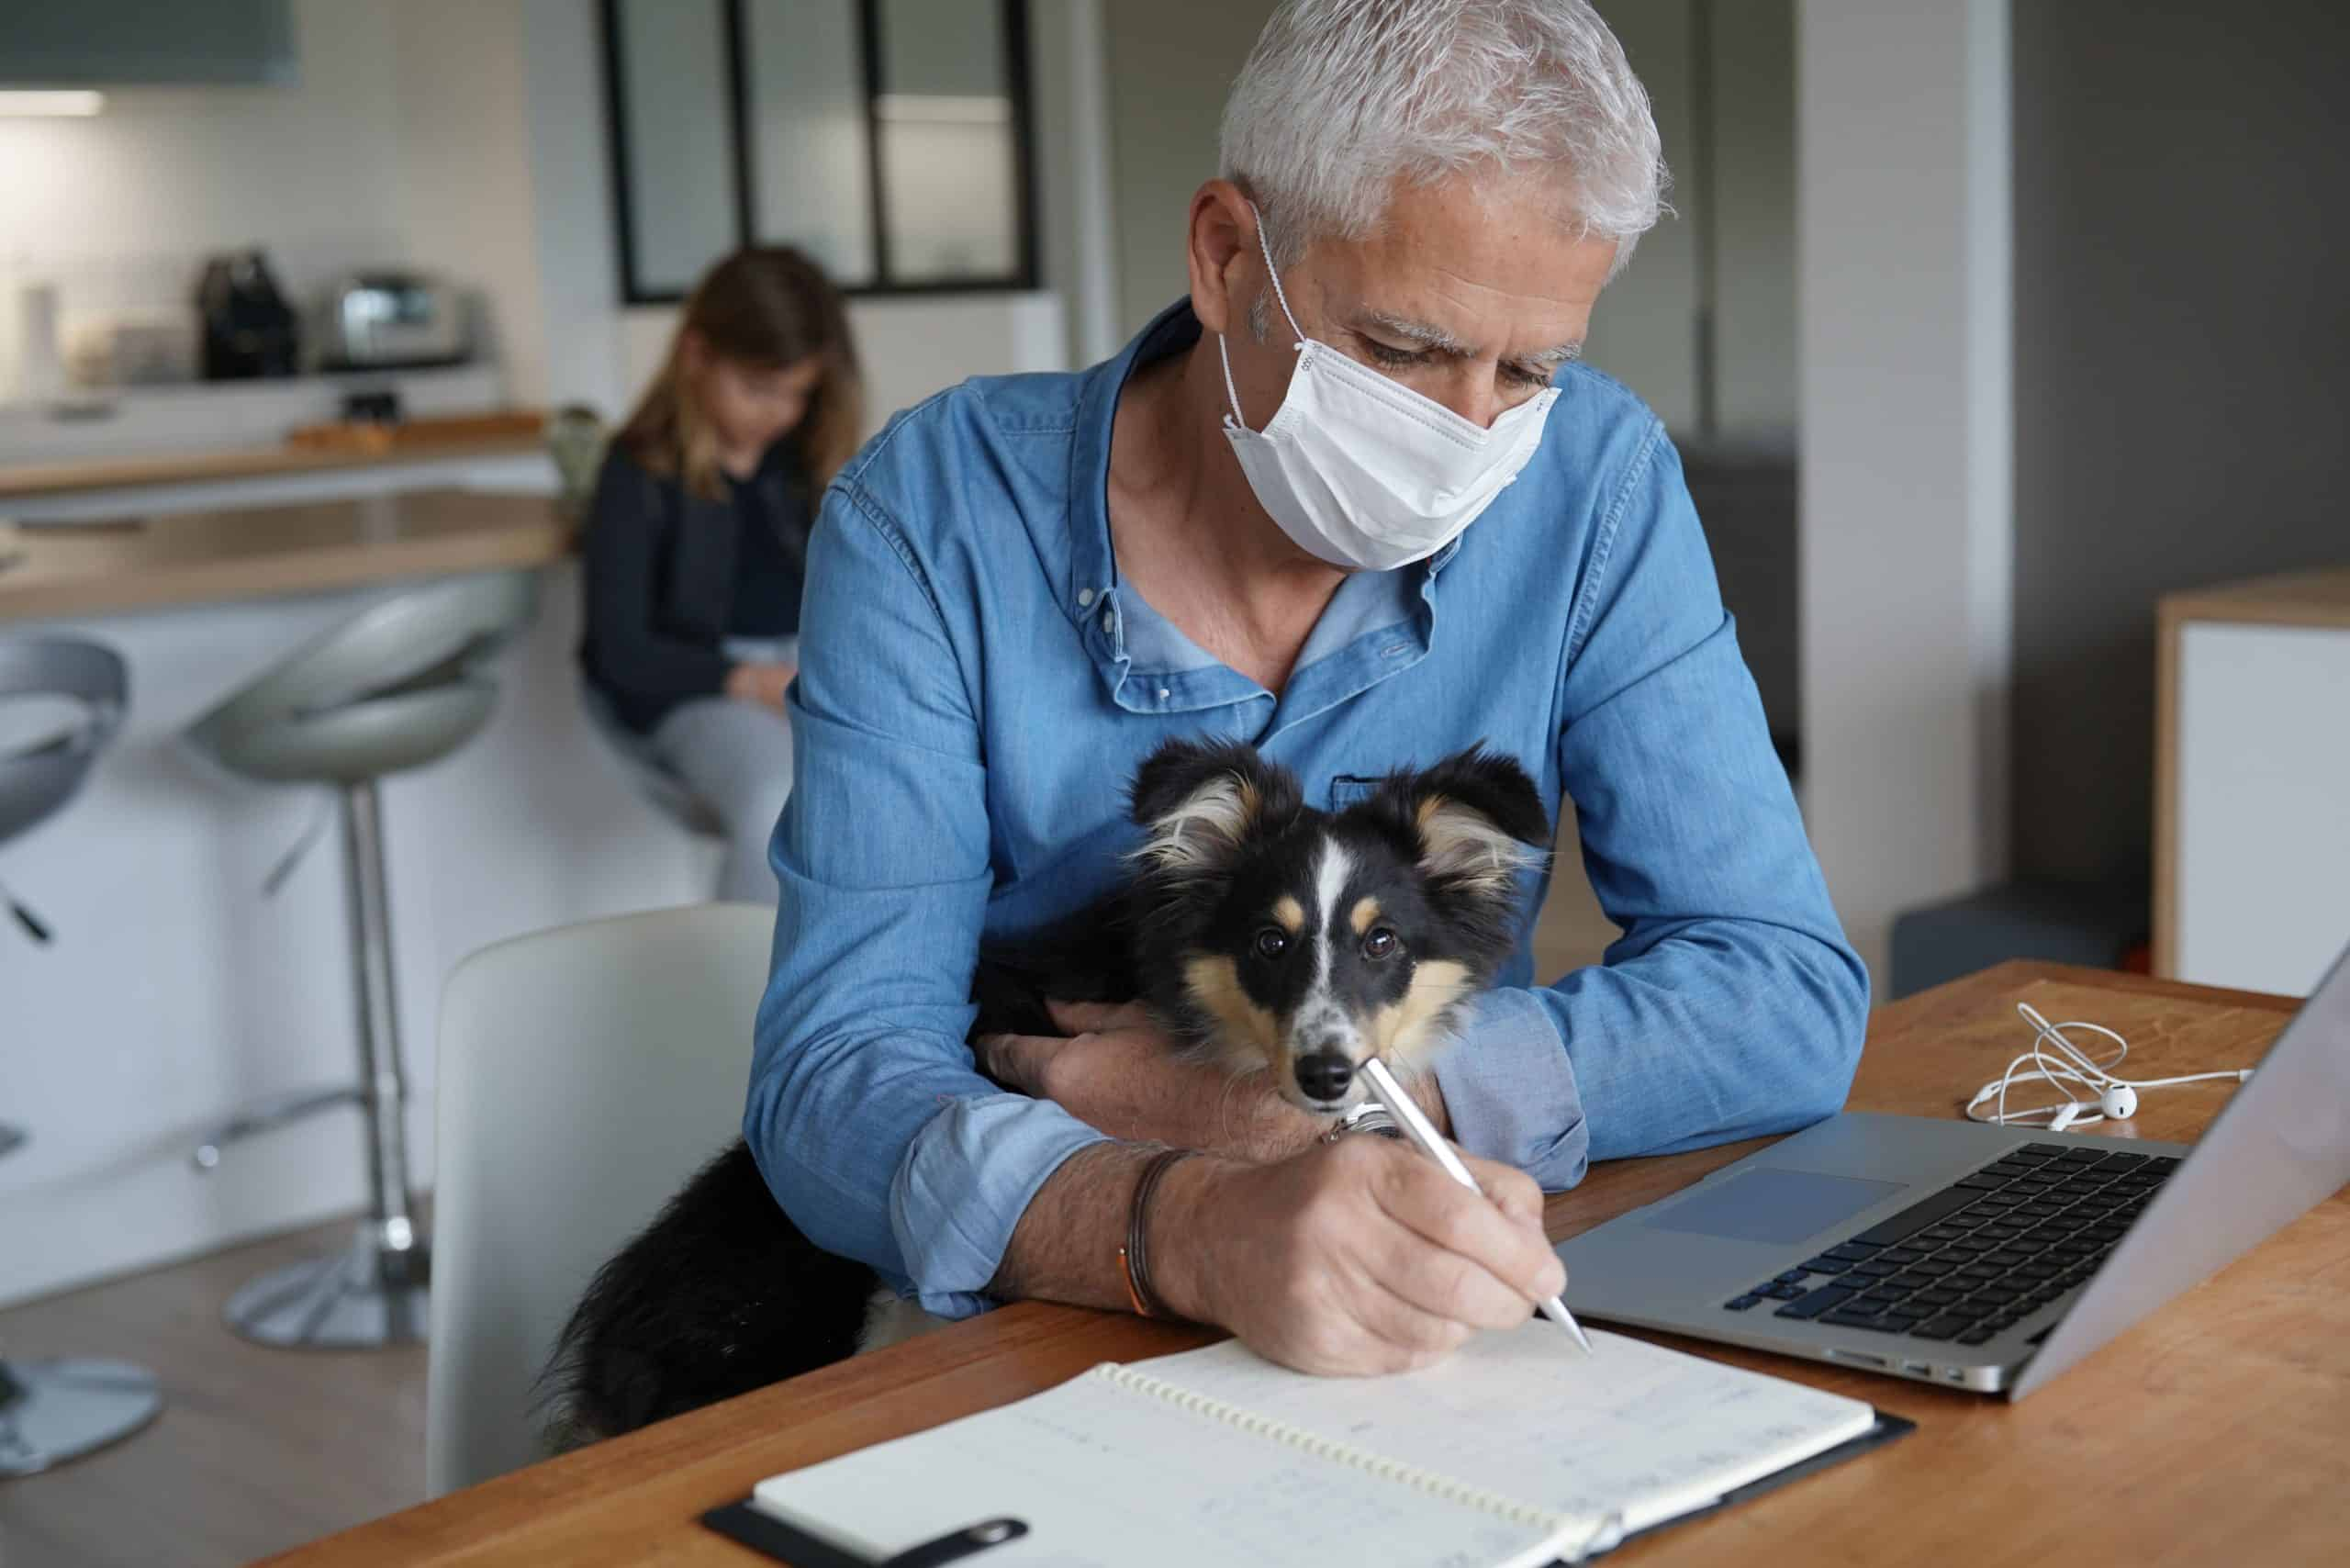 Man wears face mask while holding dog and working from home. Research suggests that there is little to no evidence to suggest dogs can catch COVID-19 or pass it to their owners.